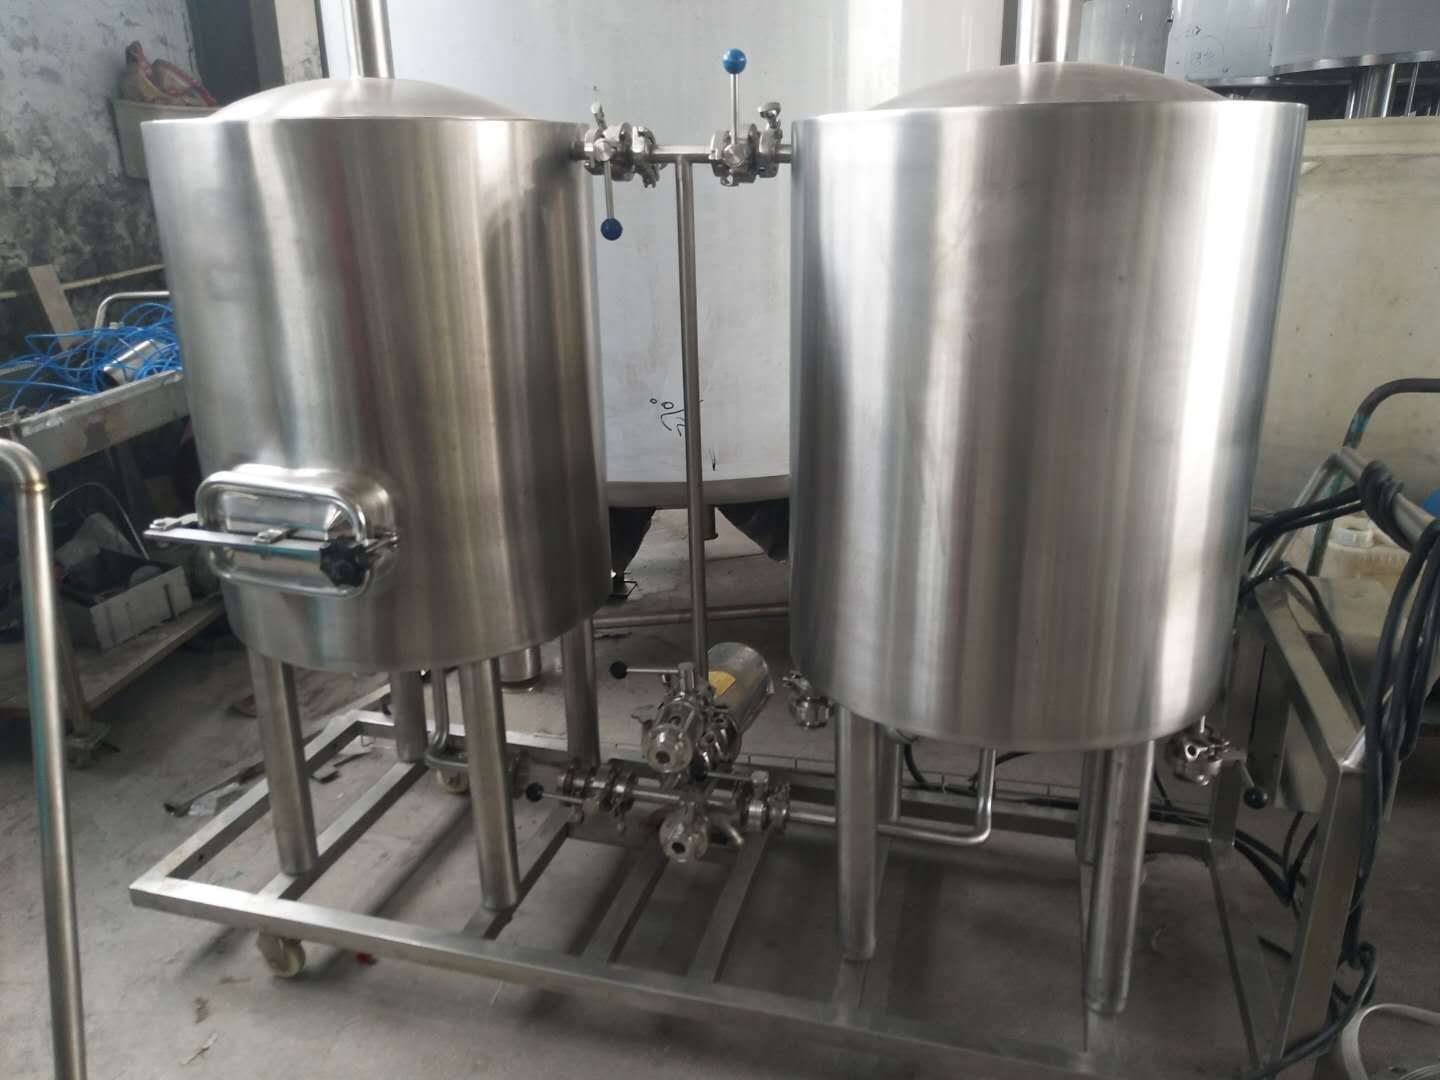 China manufacturer complete craft beer brewing equipment of sus304 to Zambia 2020 W1